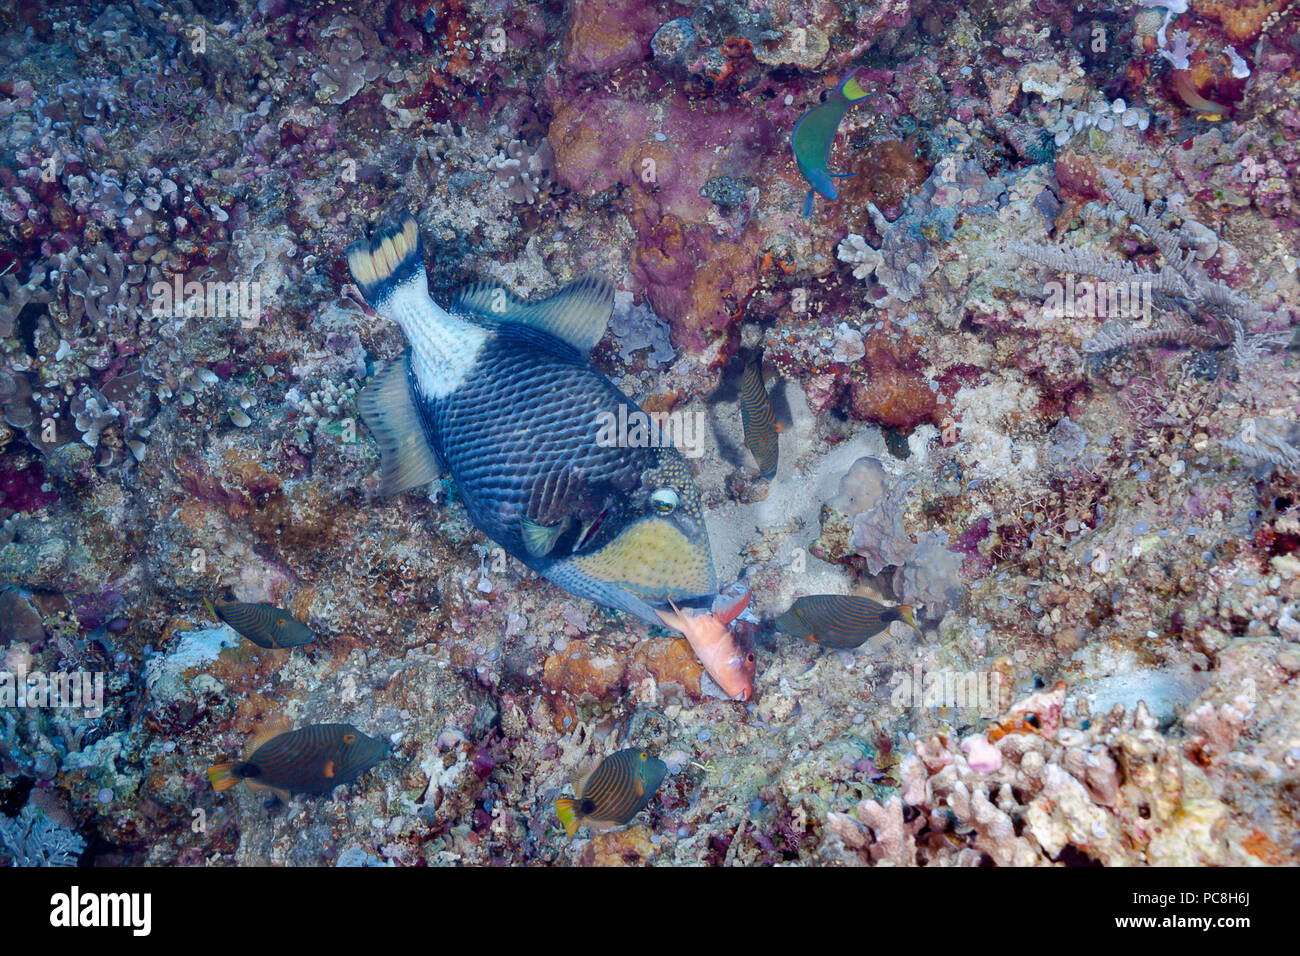 This titan triggerfish or giant triggerfish, Balistoides viridescens, is eating a parrotfish while five orange-lined triggerfish, Balistapus undulatus - Stock Image